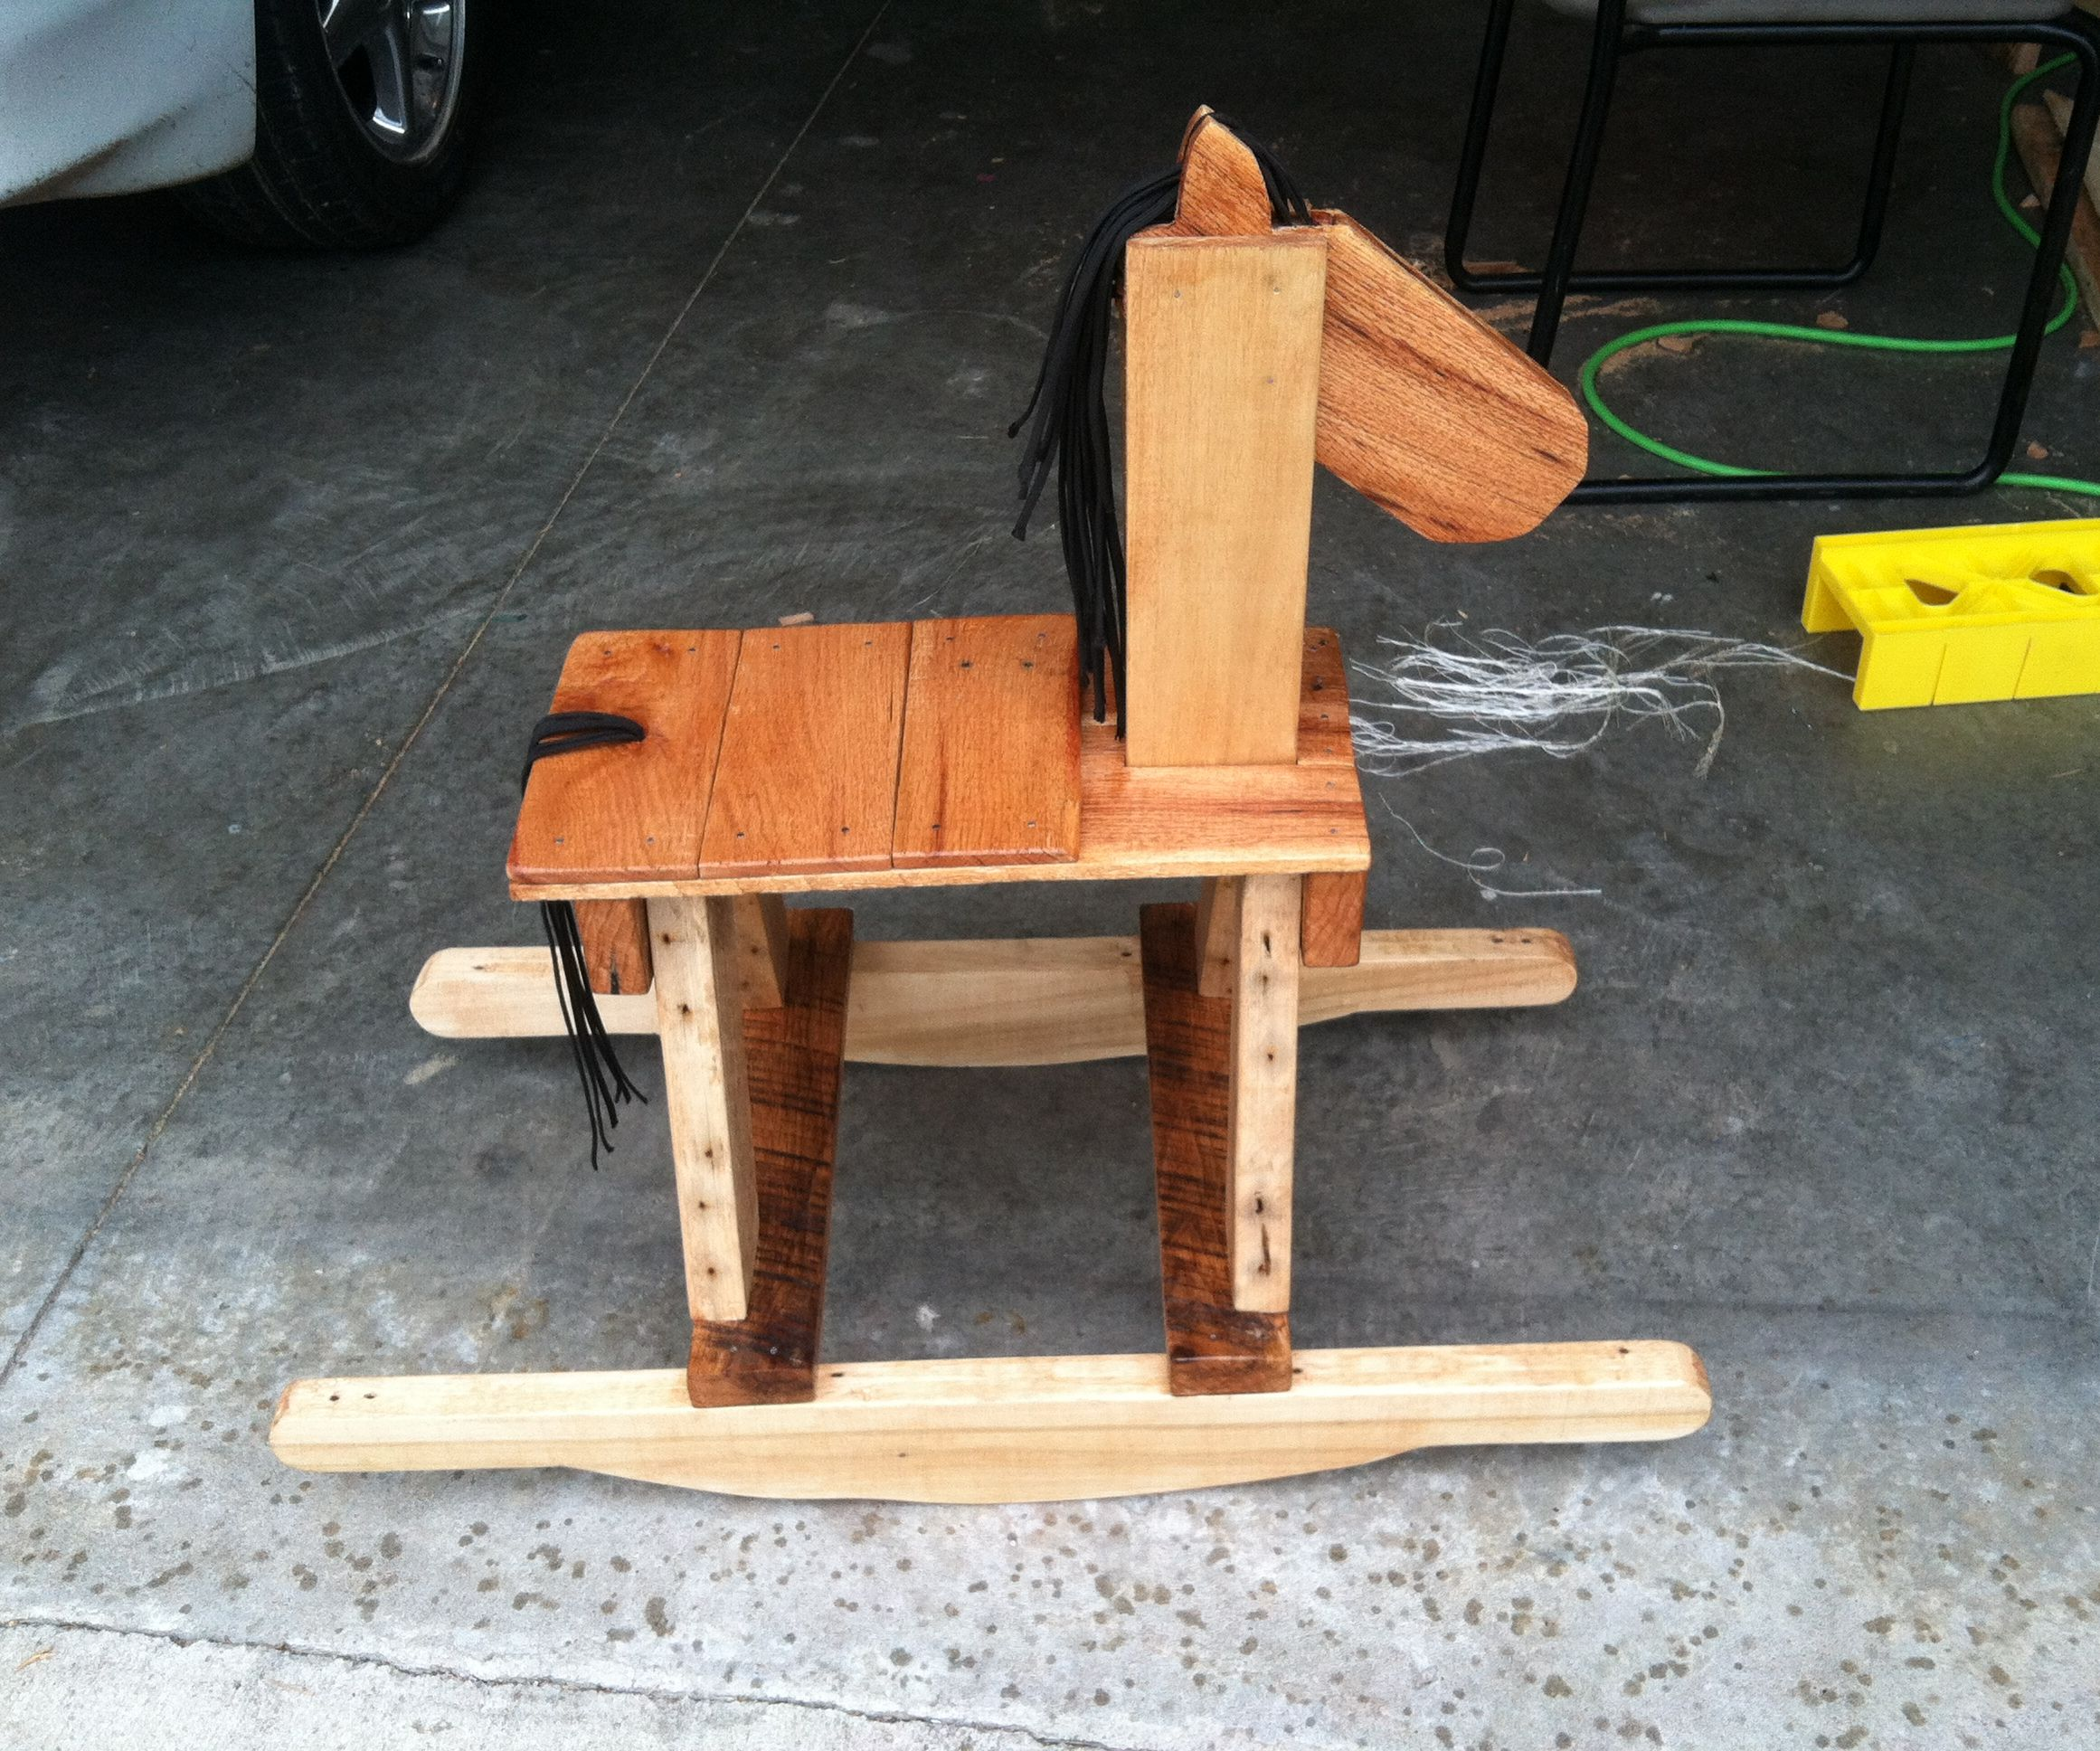 Rocking Horse Pallet Art:  How to Make Your Own Rustic Rocking Horse